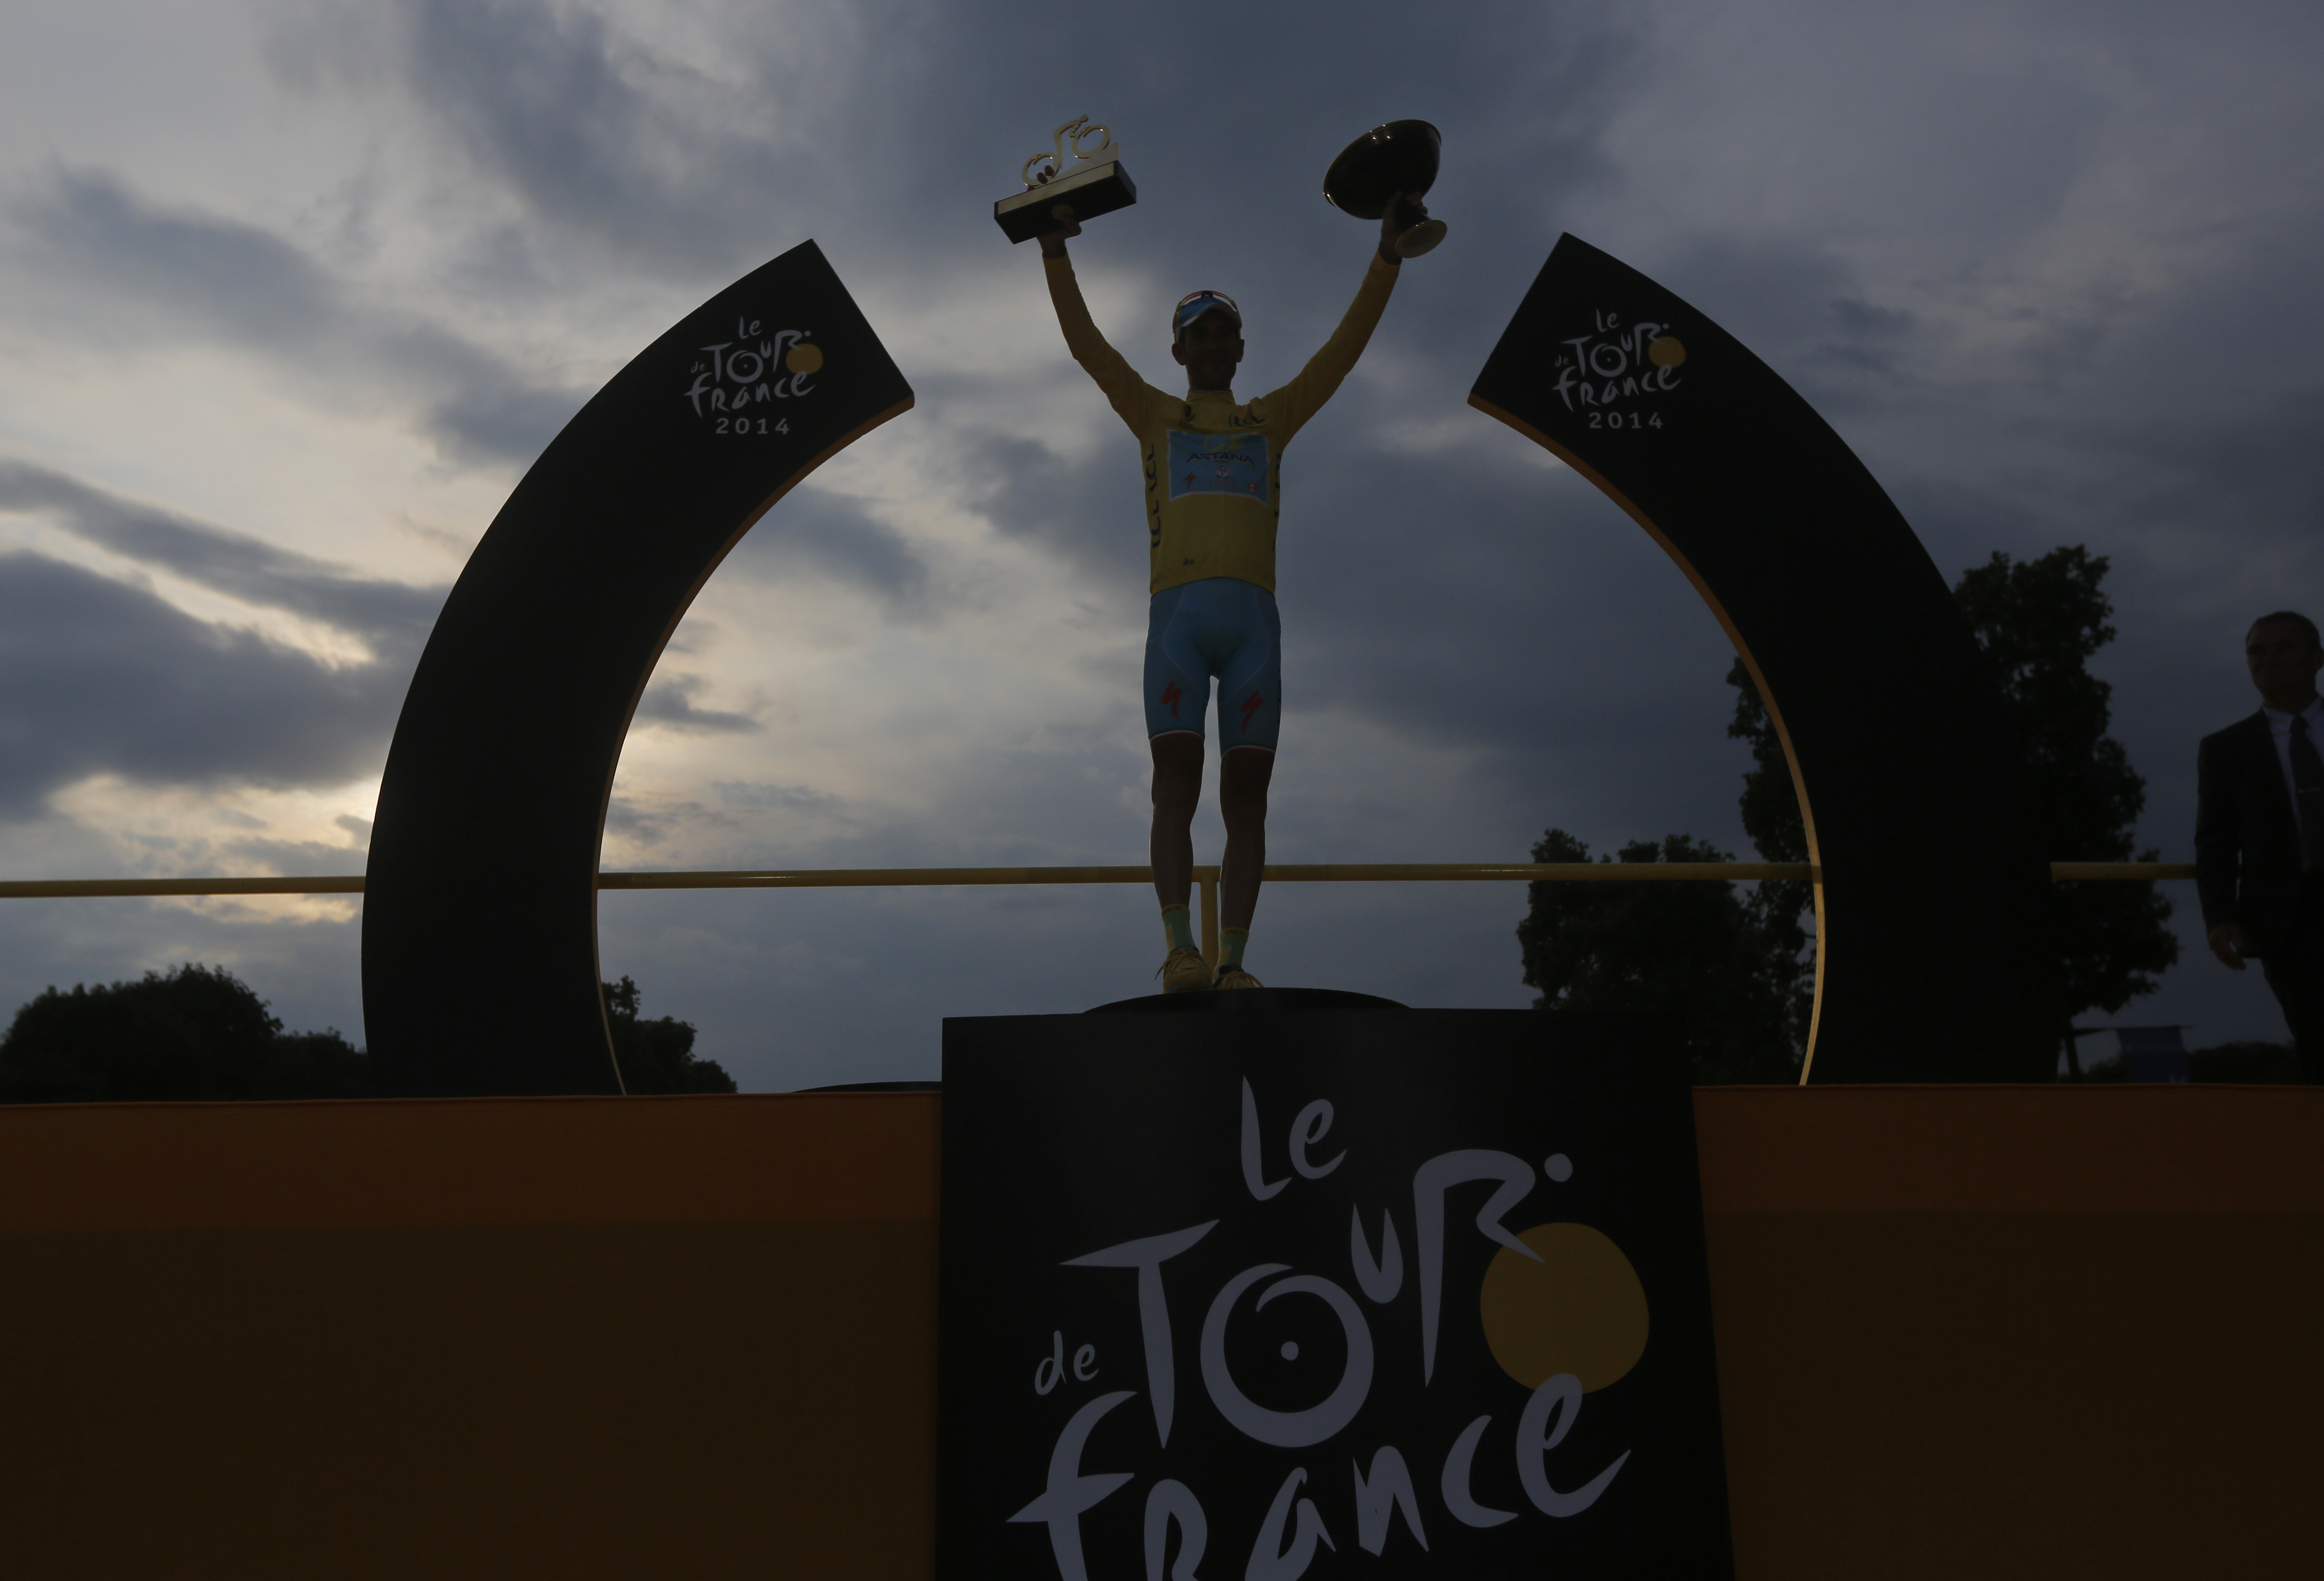 2014 Tour de France cycling race winner Italy's Vincenzo Nibali, wearing the overall leader's yellow jersey, celebrates on the podium.